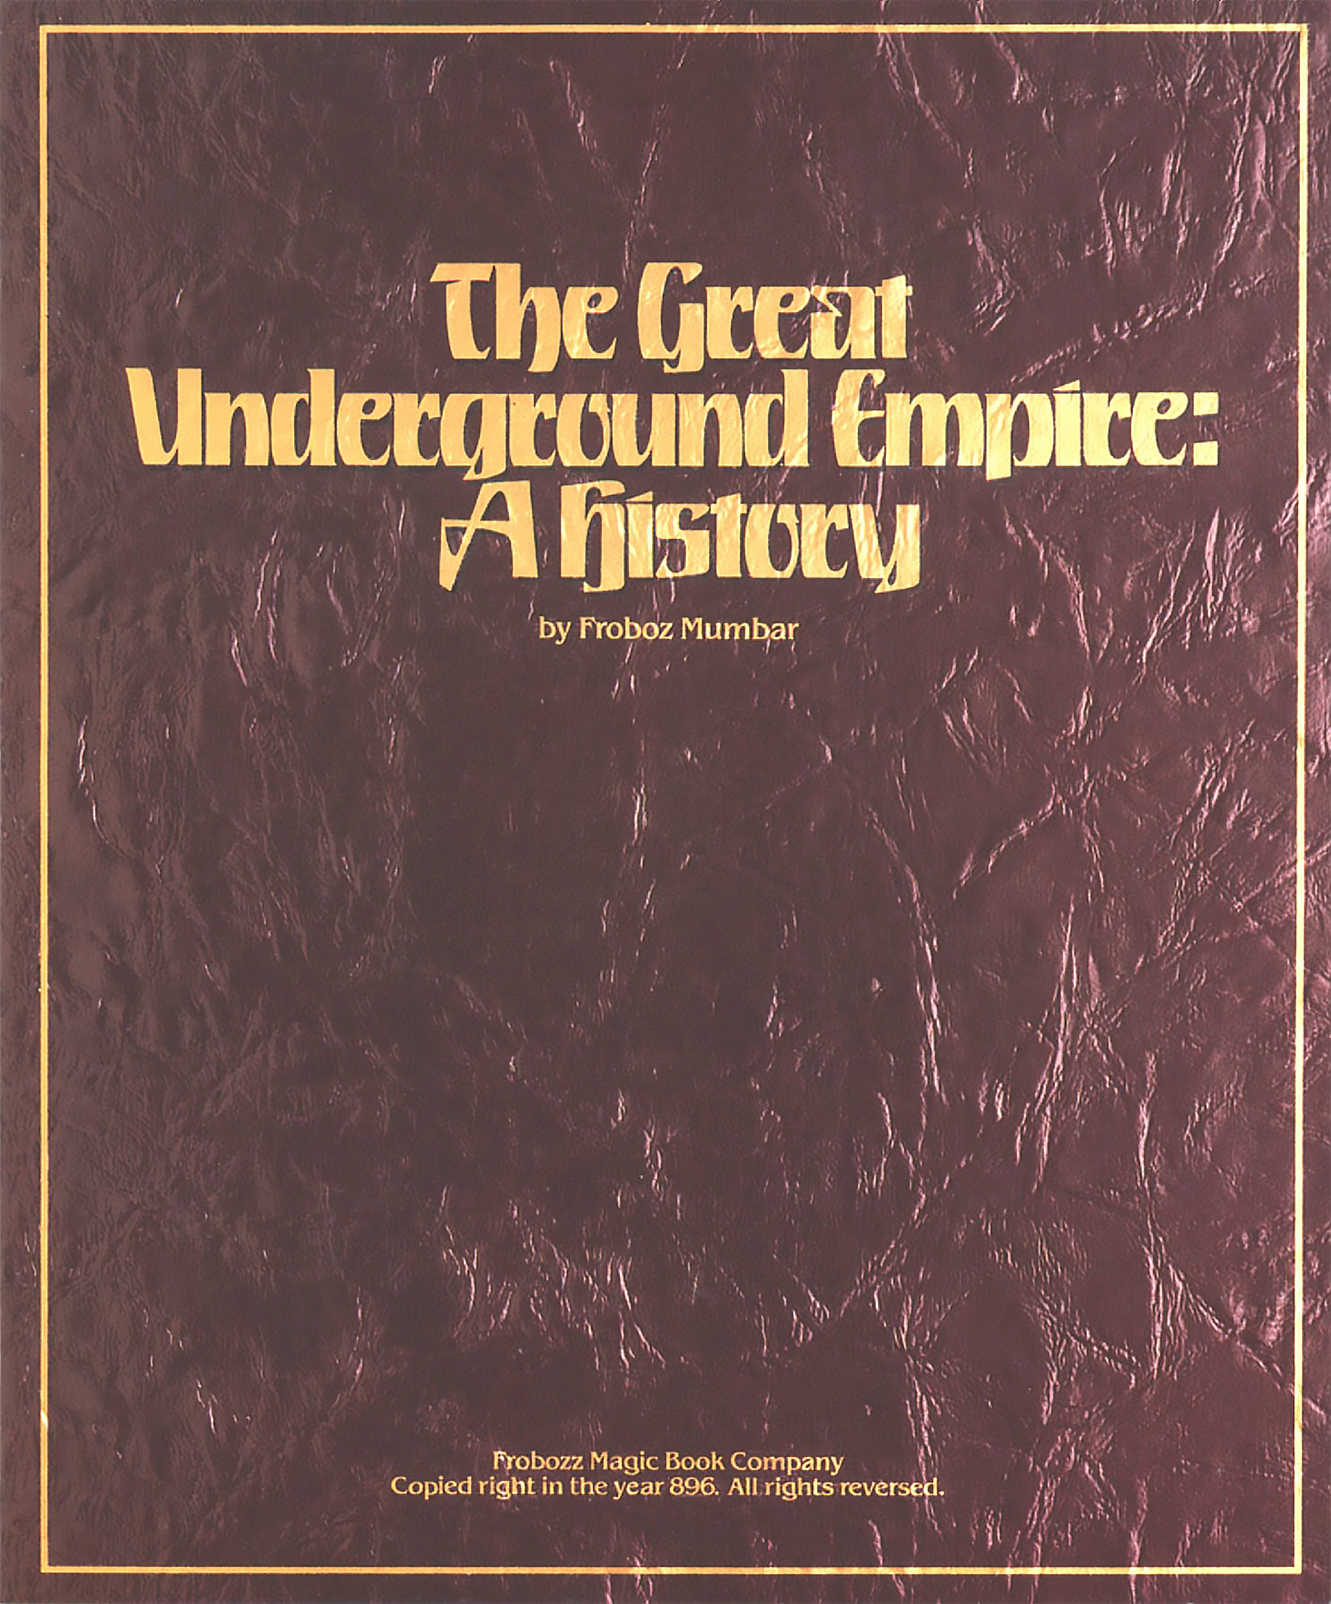 A history book included with Zork I, a computer adventure game by Infocom